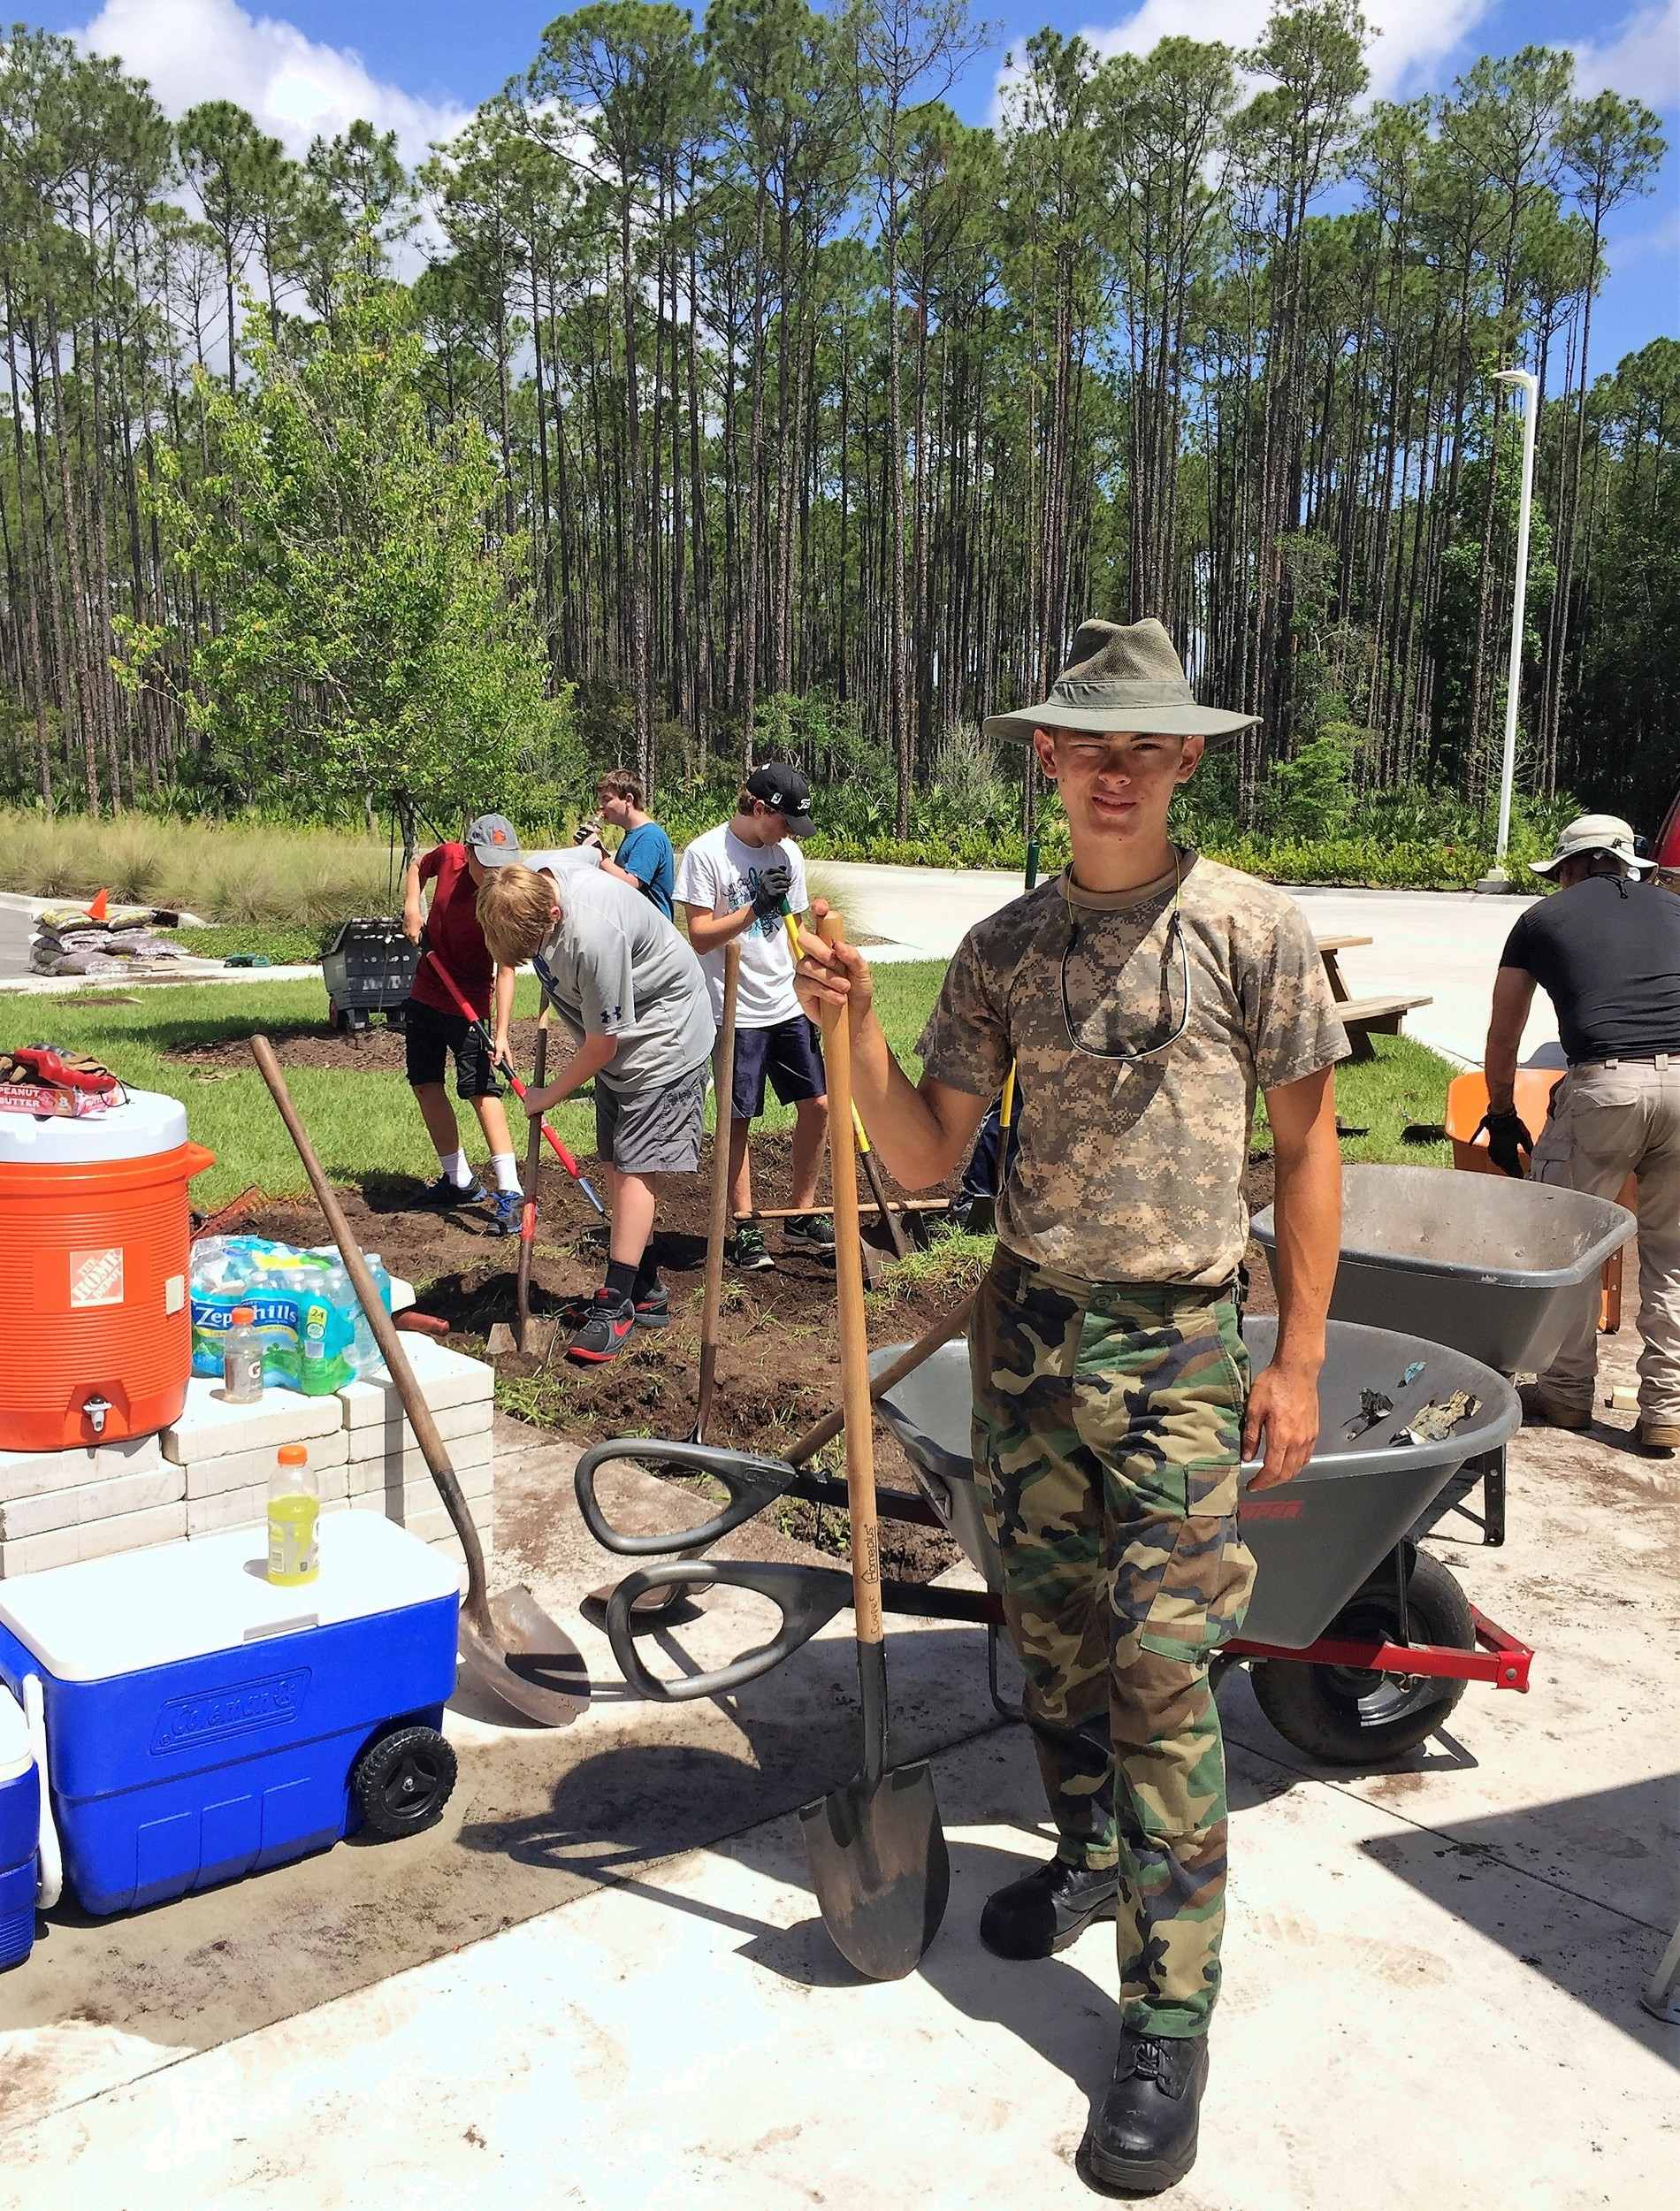 Thomas Houston leads boy scouts in building a patio at the Nocatee fire station for his Eagle Scout community service project